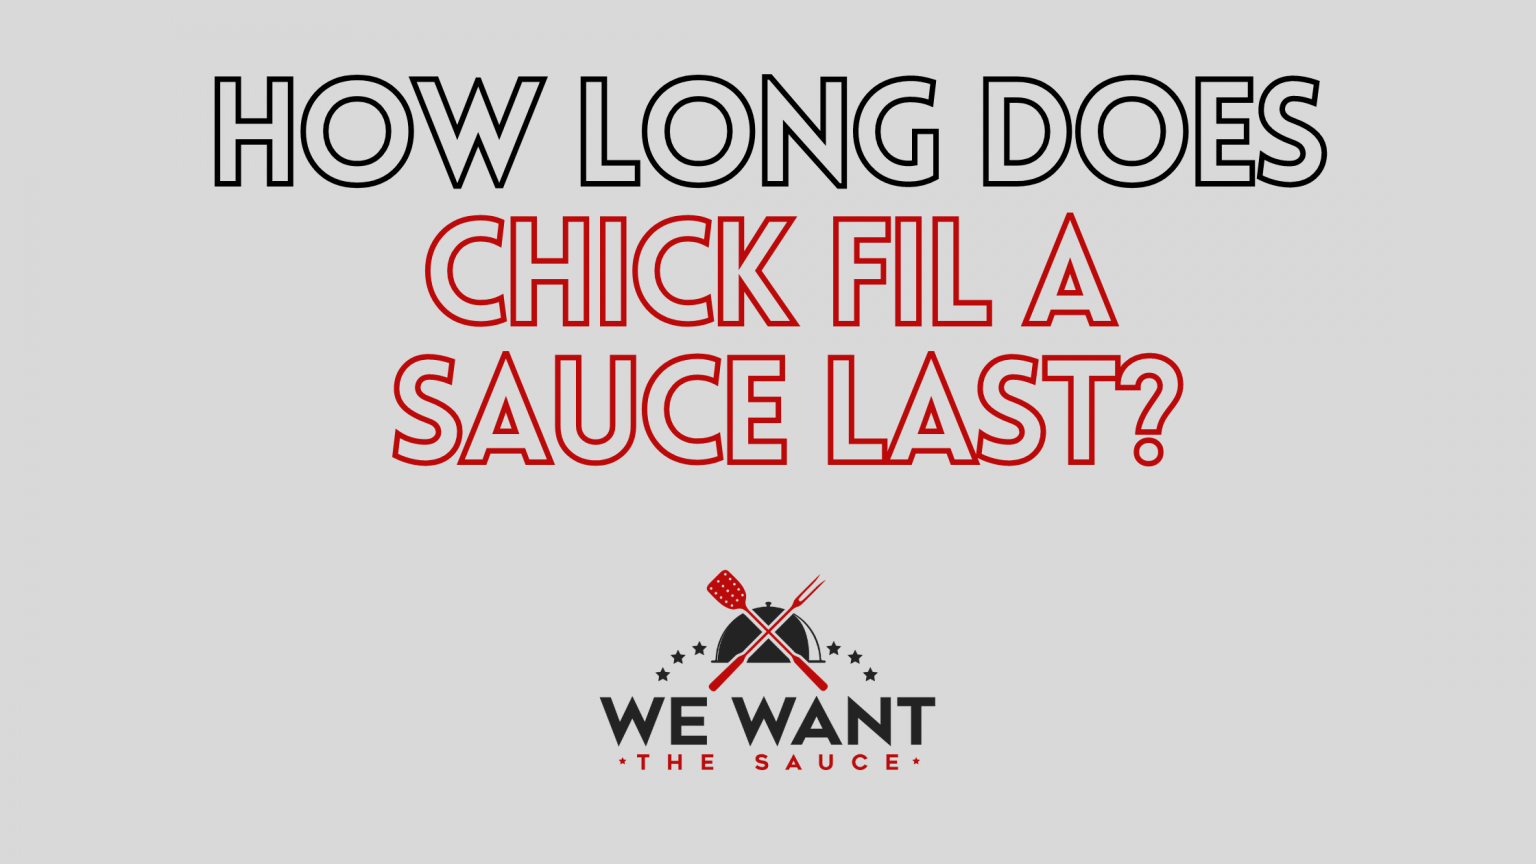 How Long Does Chick Fil A Sauce Last?